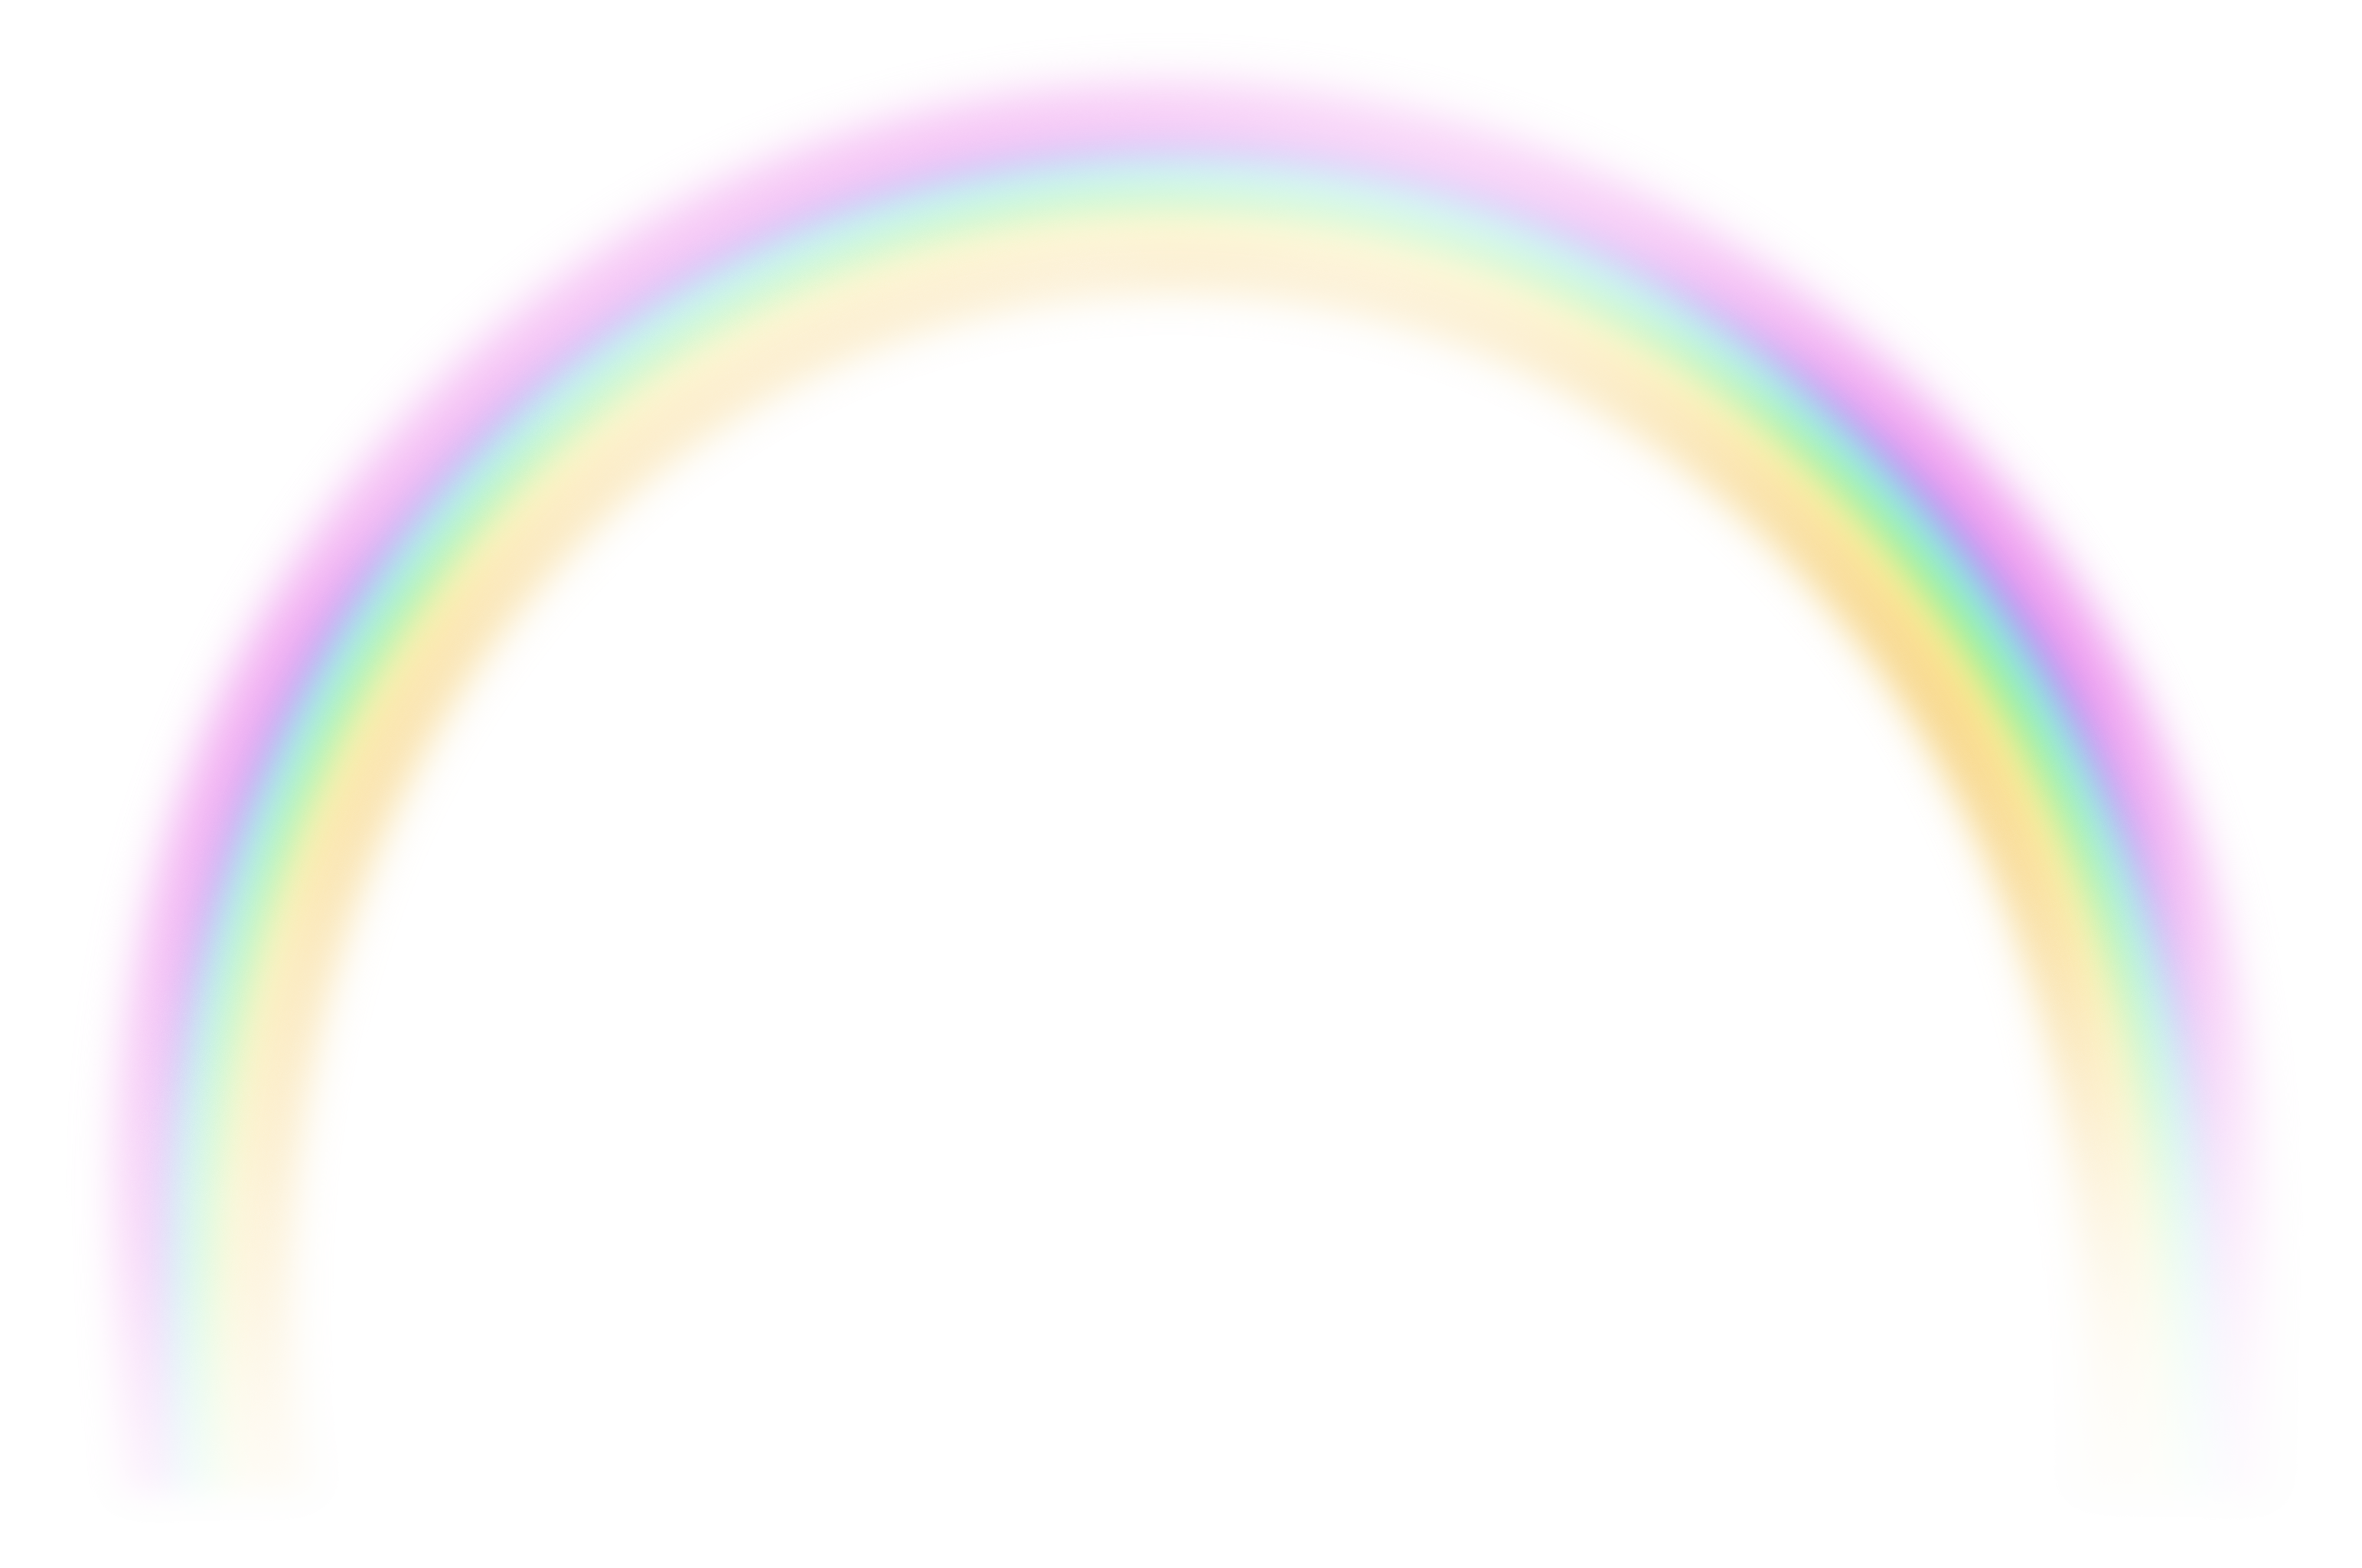 Transparent rainbow png. Clip art image gallery